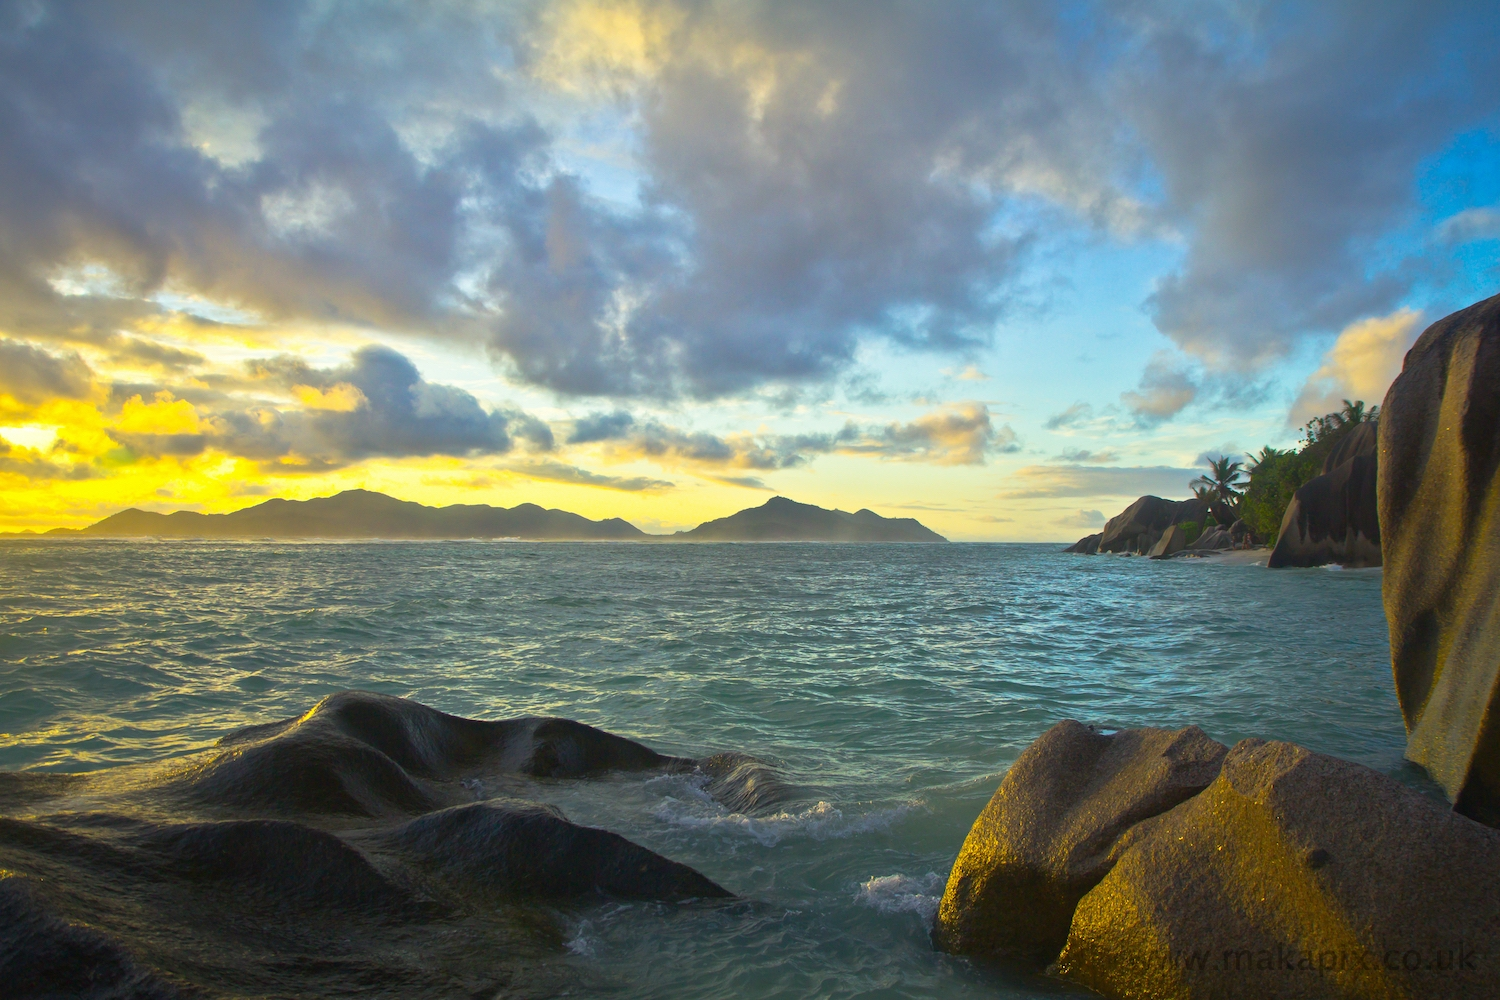 Sunset at Anse Source d'Argent, La Digue, Seychelles